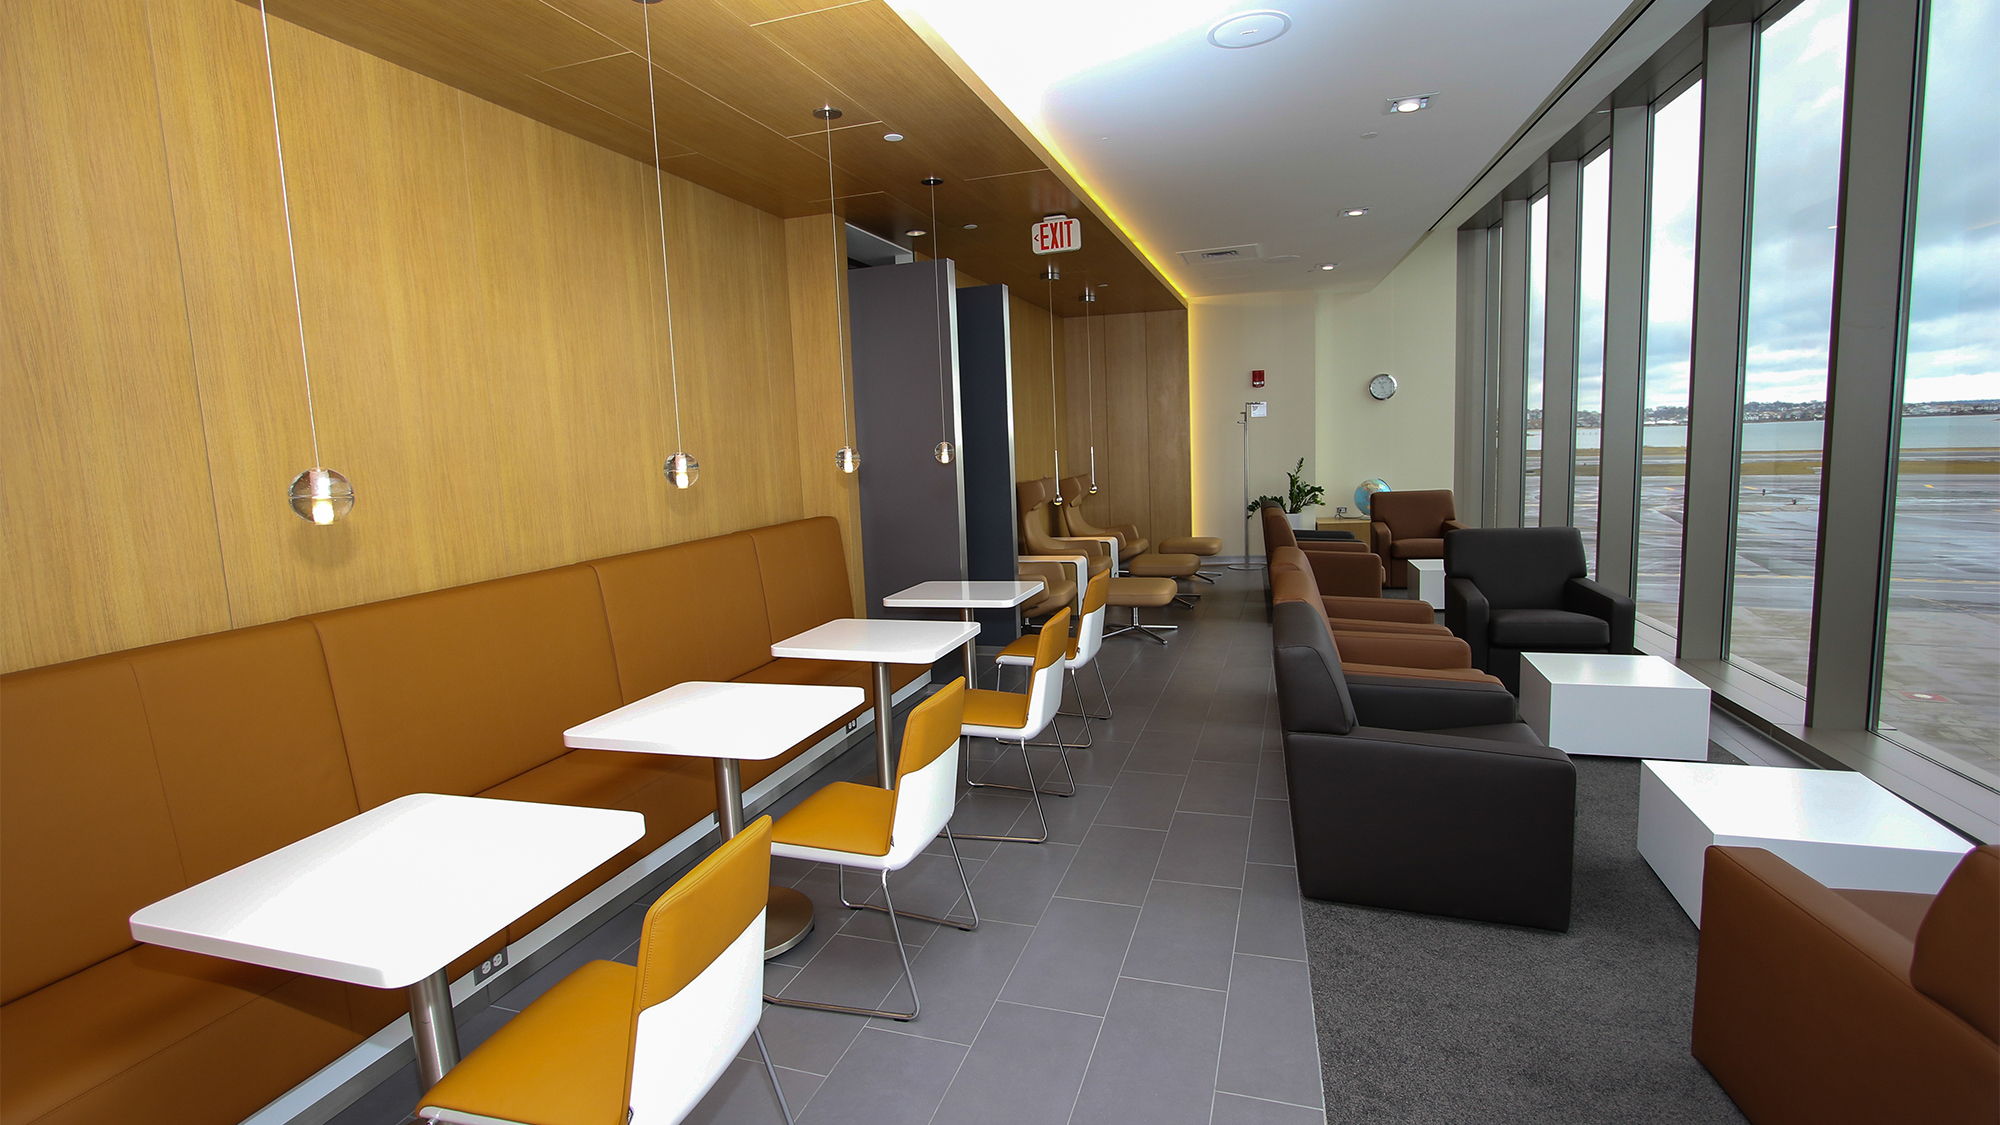 Lufthansa Opens Bigger Airport Lounge In Boston Travel Weekly